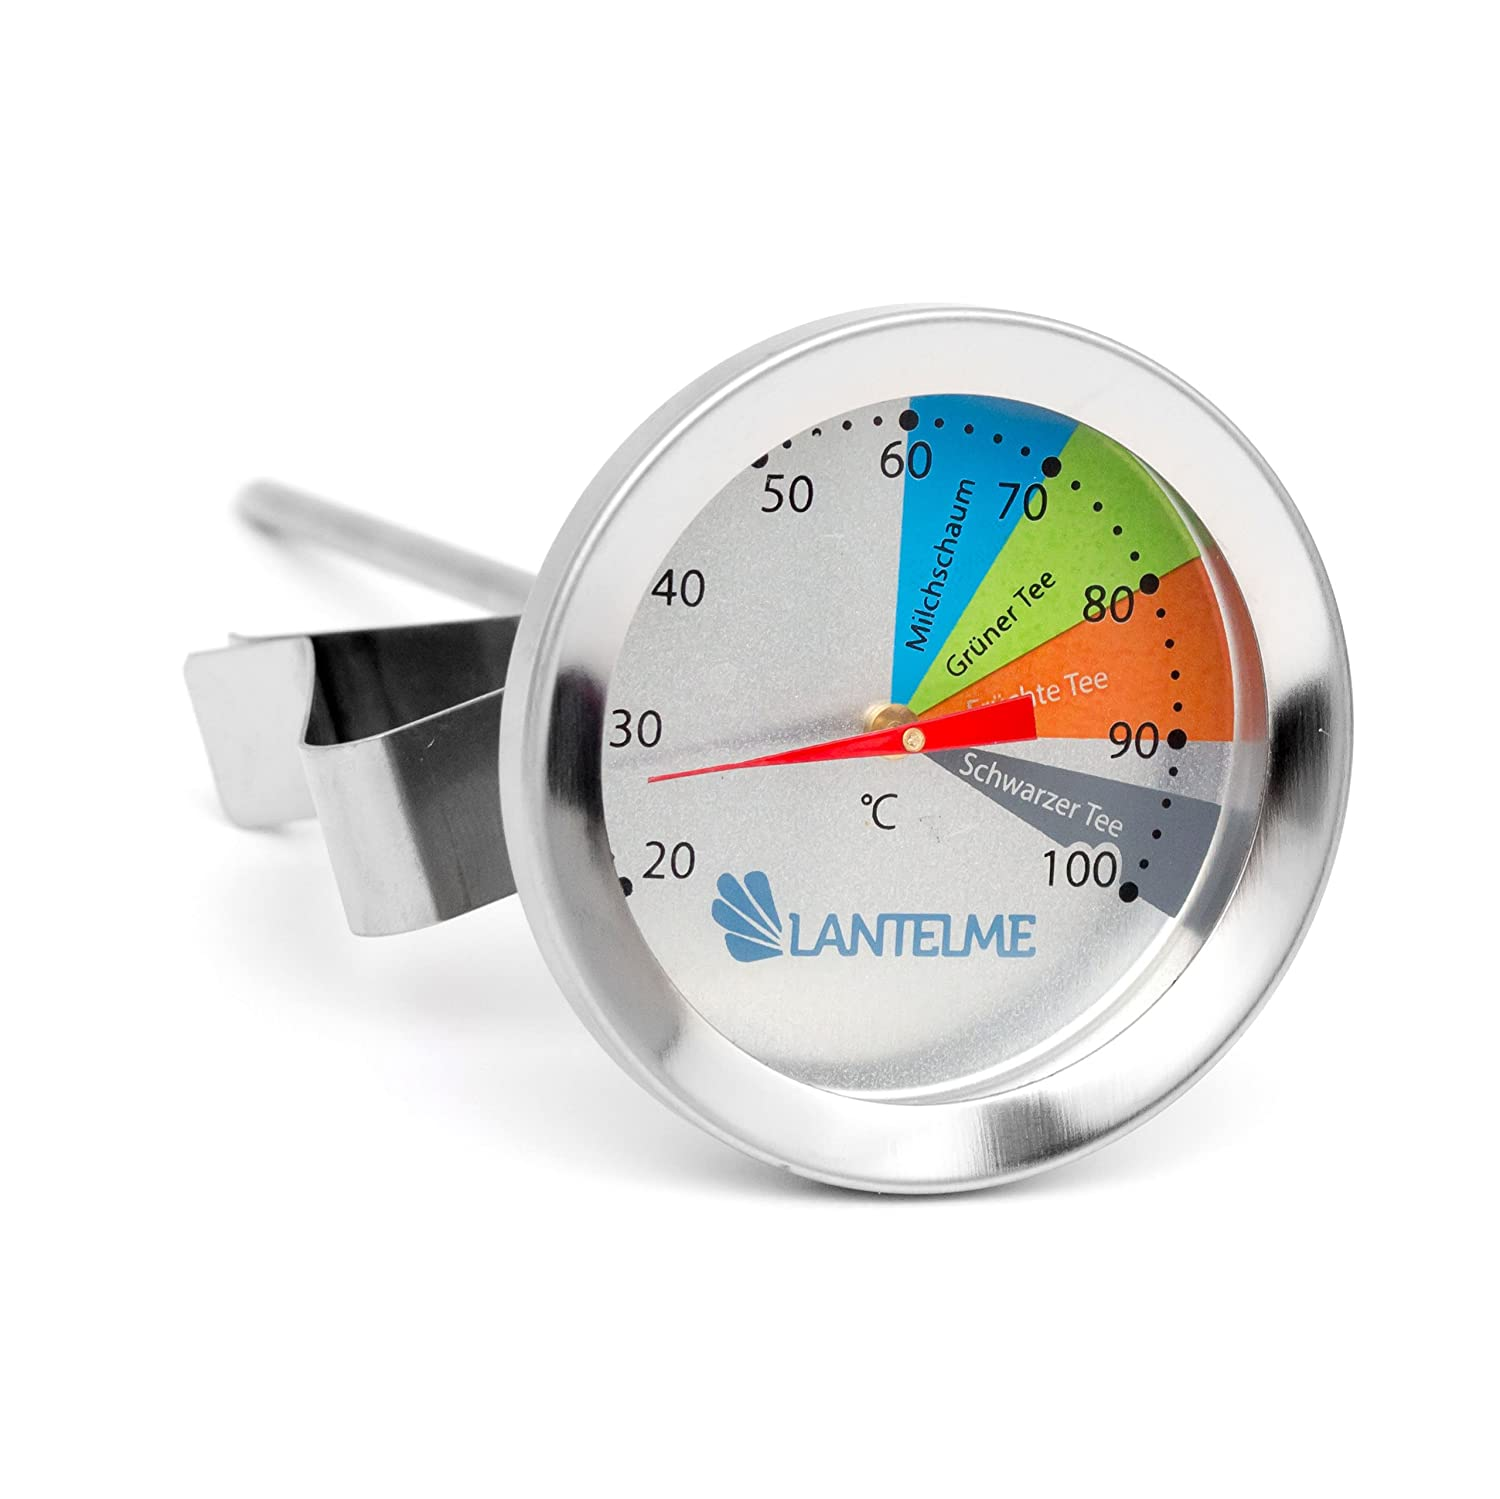 Lantelme 4975 Stainless Steel Tea thermometer for Cup or Pitcher Water Resistant and Dishwasher Safe